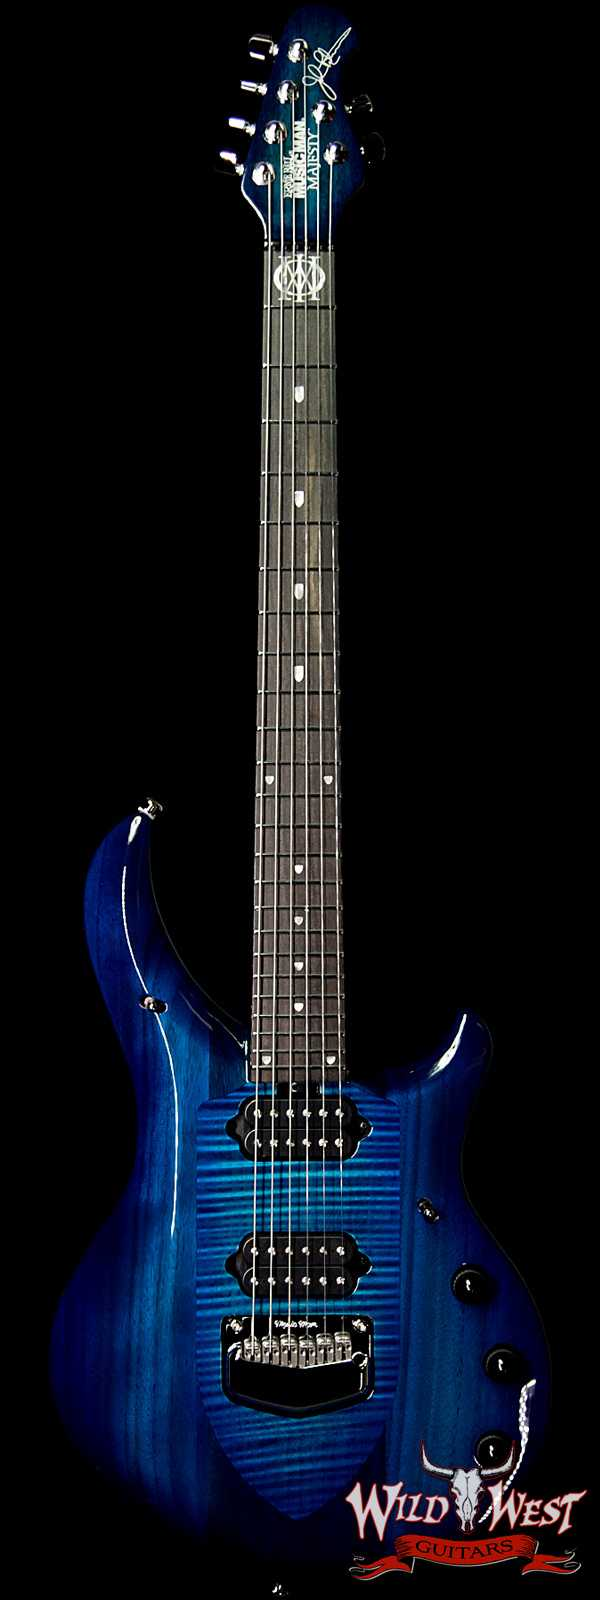 Ernie Ball Music Man Majesty 6 HH Piezo Bridge Ebony Fingerboard Blue Honu